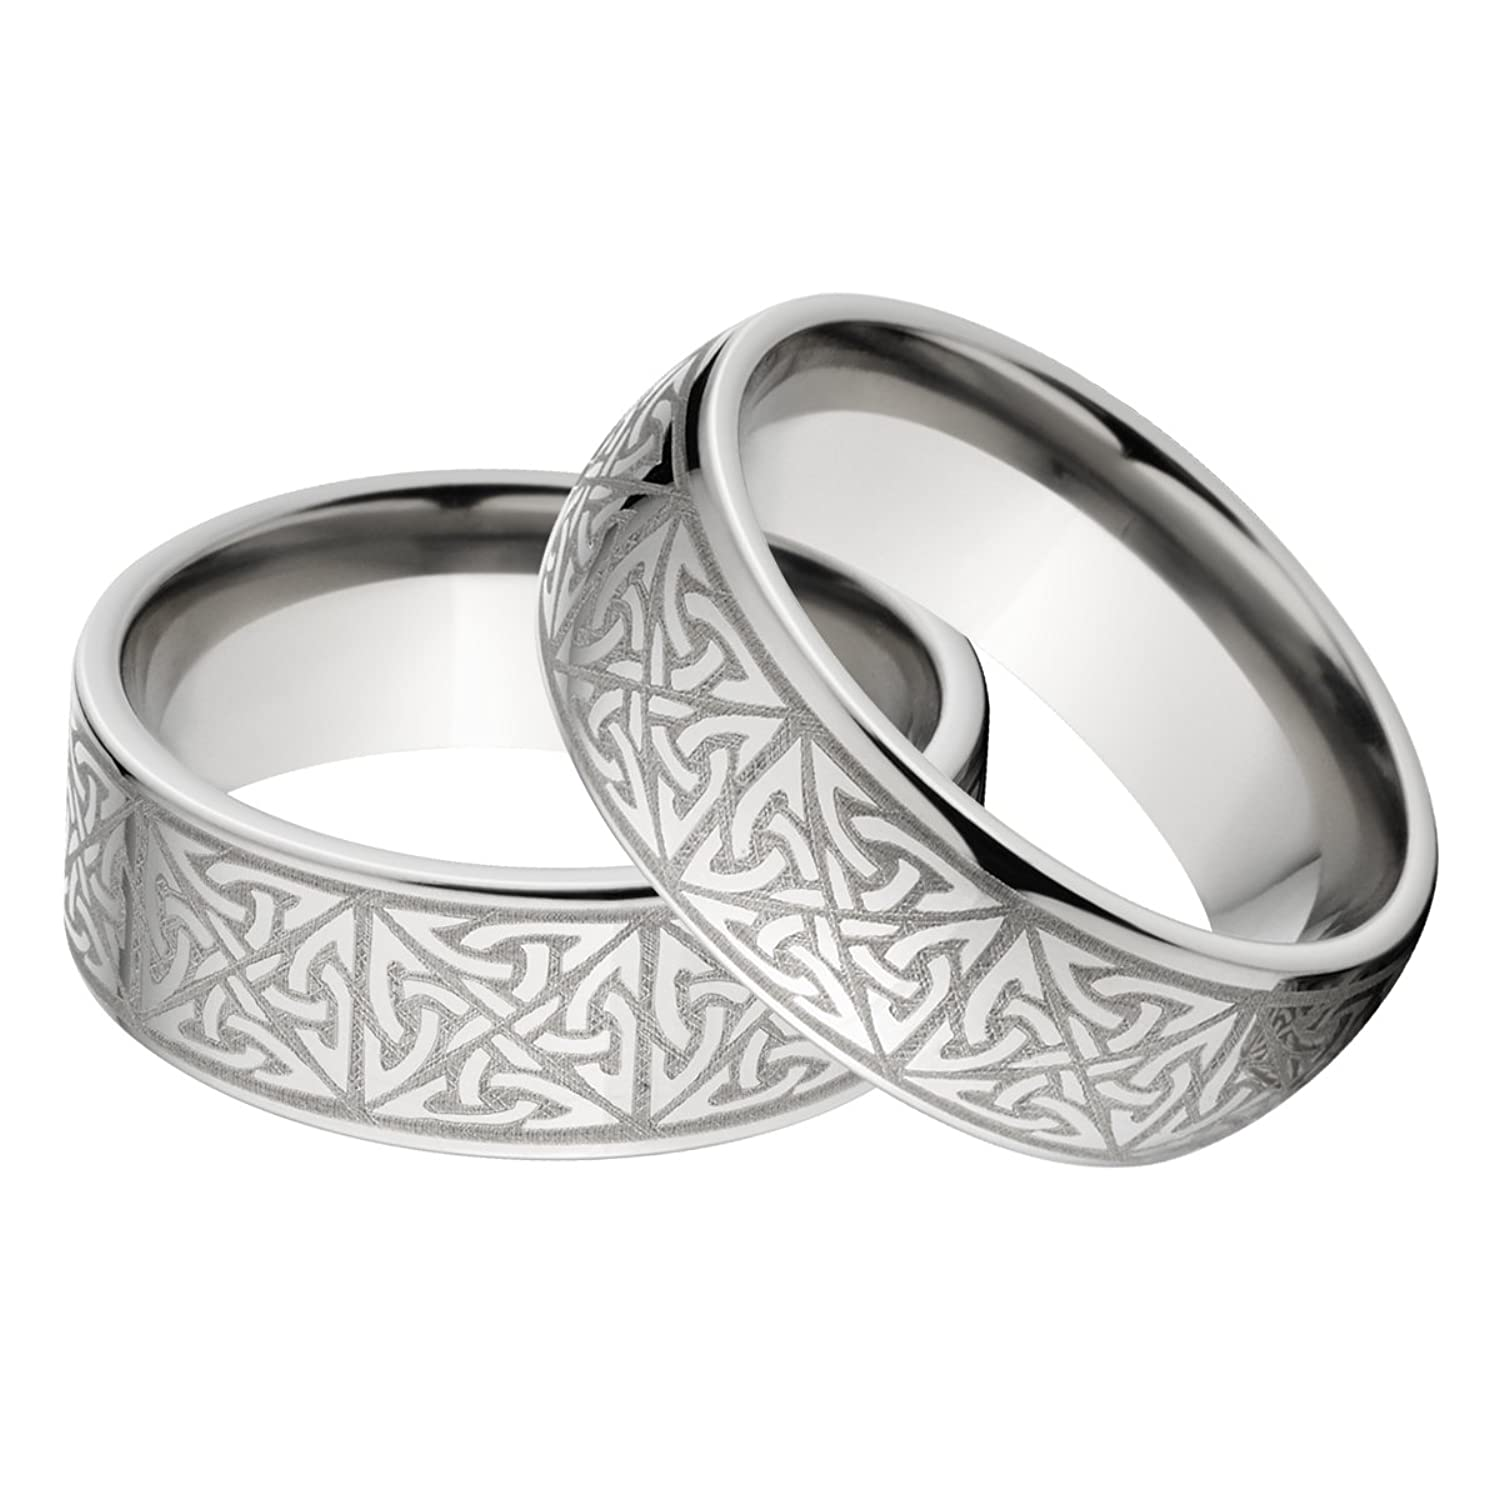 awesome rings band gaelic of elegant matvuk wedding decoration inscriptions new com